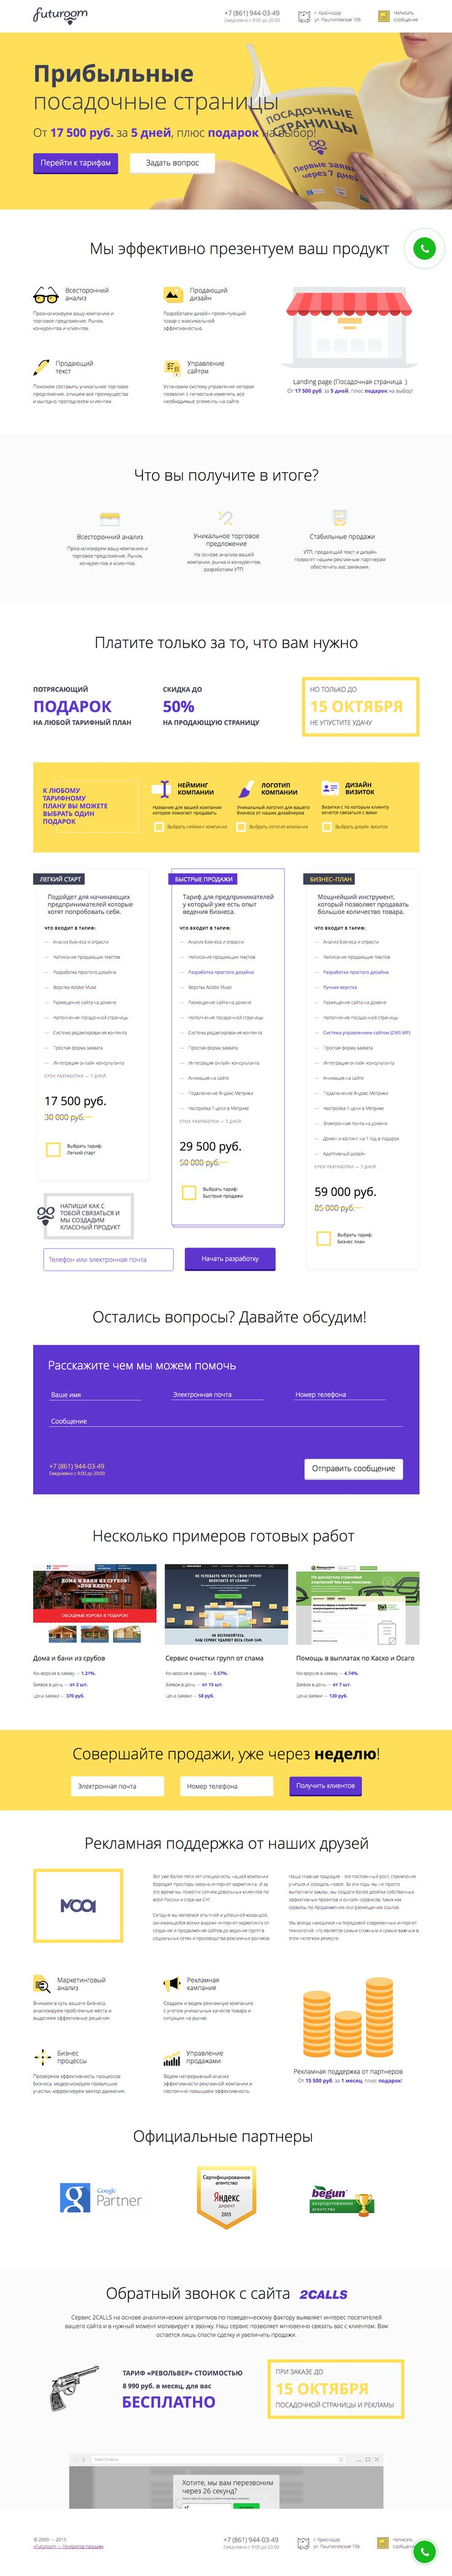 Landing page for Landing pages. ver 1, Site © СтаниславНепрокин